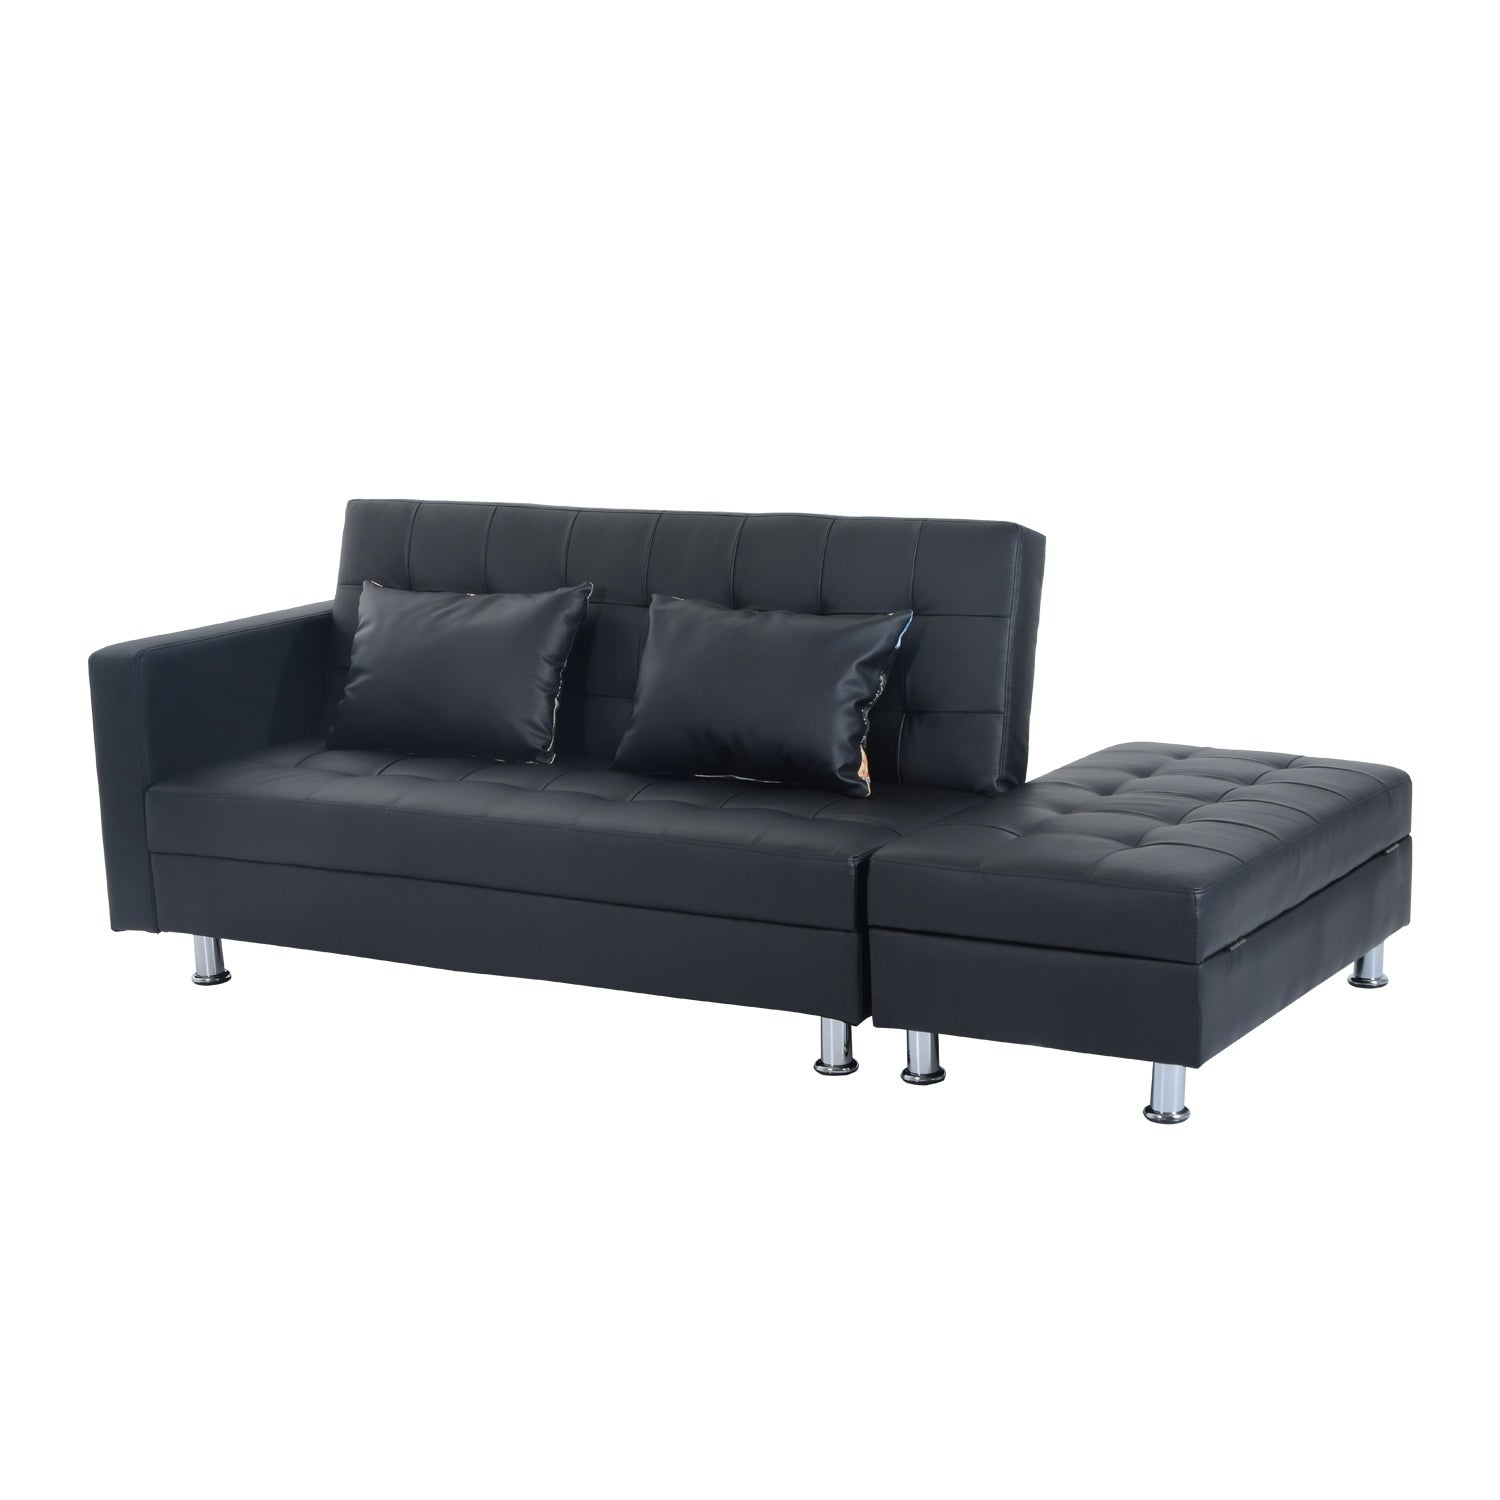 Superbe Shop HomCom Faux Leather Convertible Sofa Sleeper Bed W/Storage Ottoman    Free Shipping Today   Overstock.com   17966927